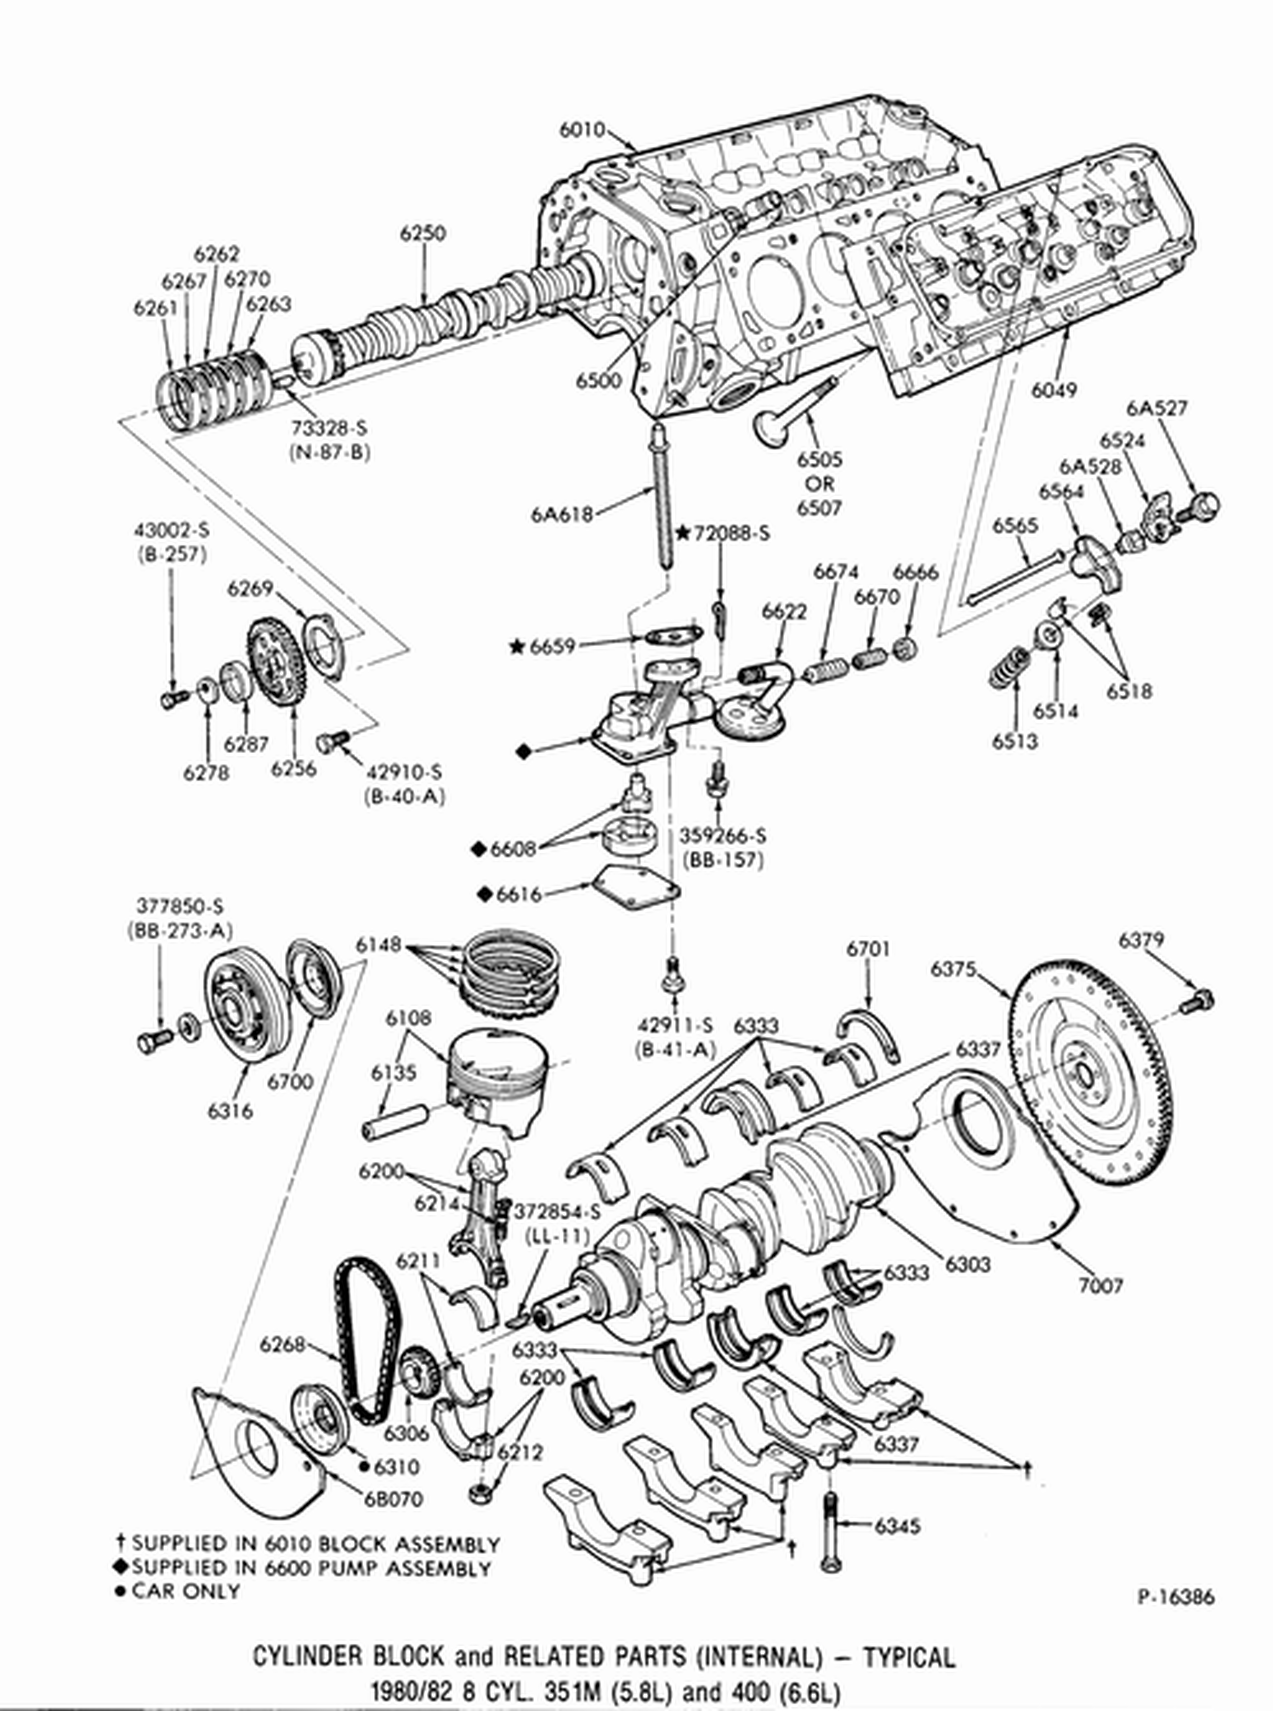 Ford 4 6 Engine Oil System Diagram | Wiring Liry Ford Engine Oil System Diagram on 1999 ford expedition coil pack diagram, 97 ford 4.6 engine diagram, ford 4.6 triton engine diagram, ford 4.6 engine head diagram, ford 4.6 plug wire diagram, ford 6.0 coolant flow diagram, ford 4.6 timing chain diagram, ford 4.6 timing chain marks, 1997 ford f150 starter wiring diagram, 1995 cadillac deville vacuum diagram, 1999 ford 4.6 engine diagram, ford f-150 4.6 engine diagram,